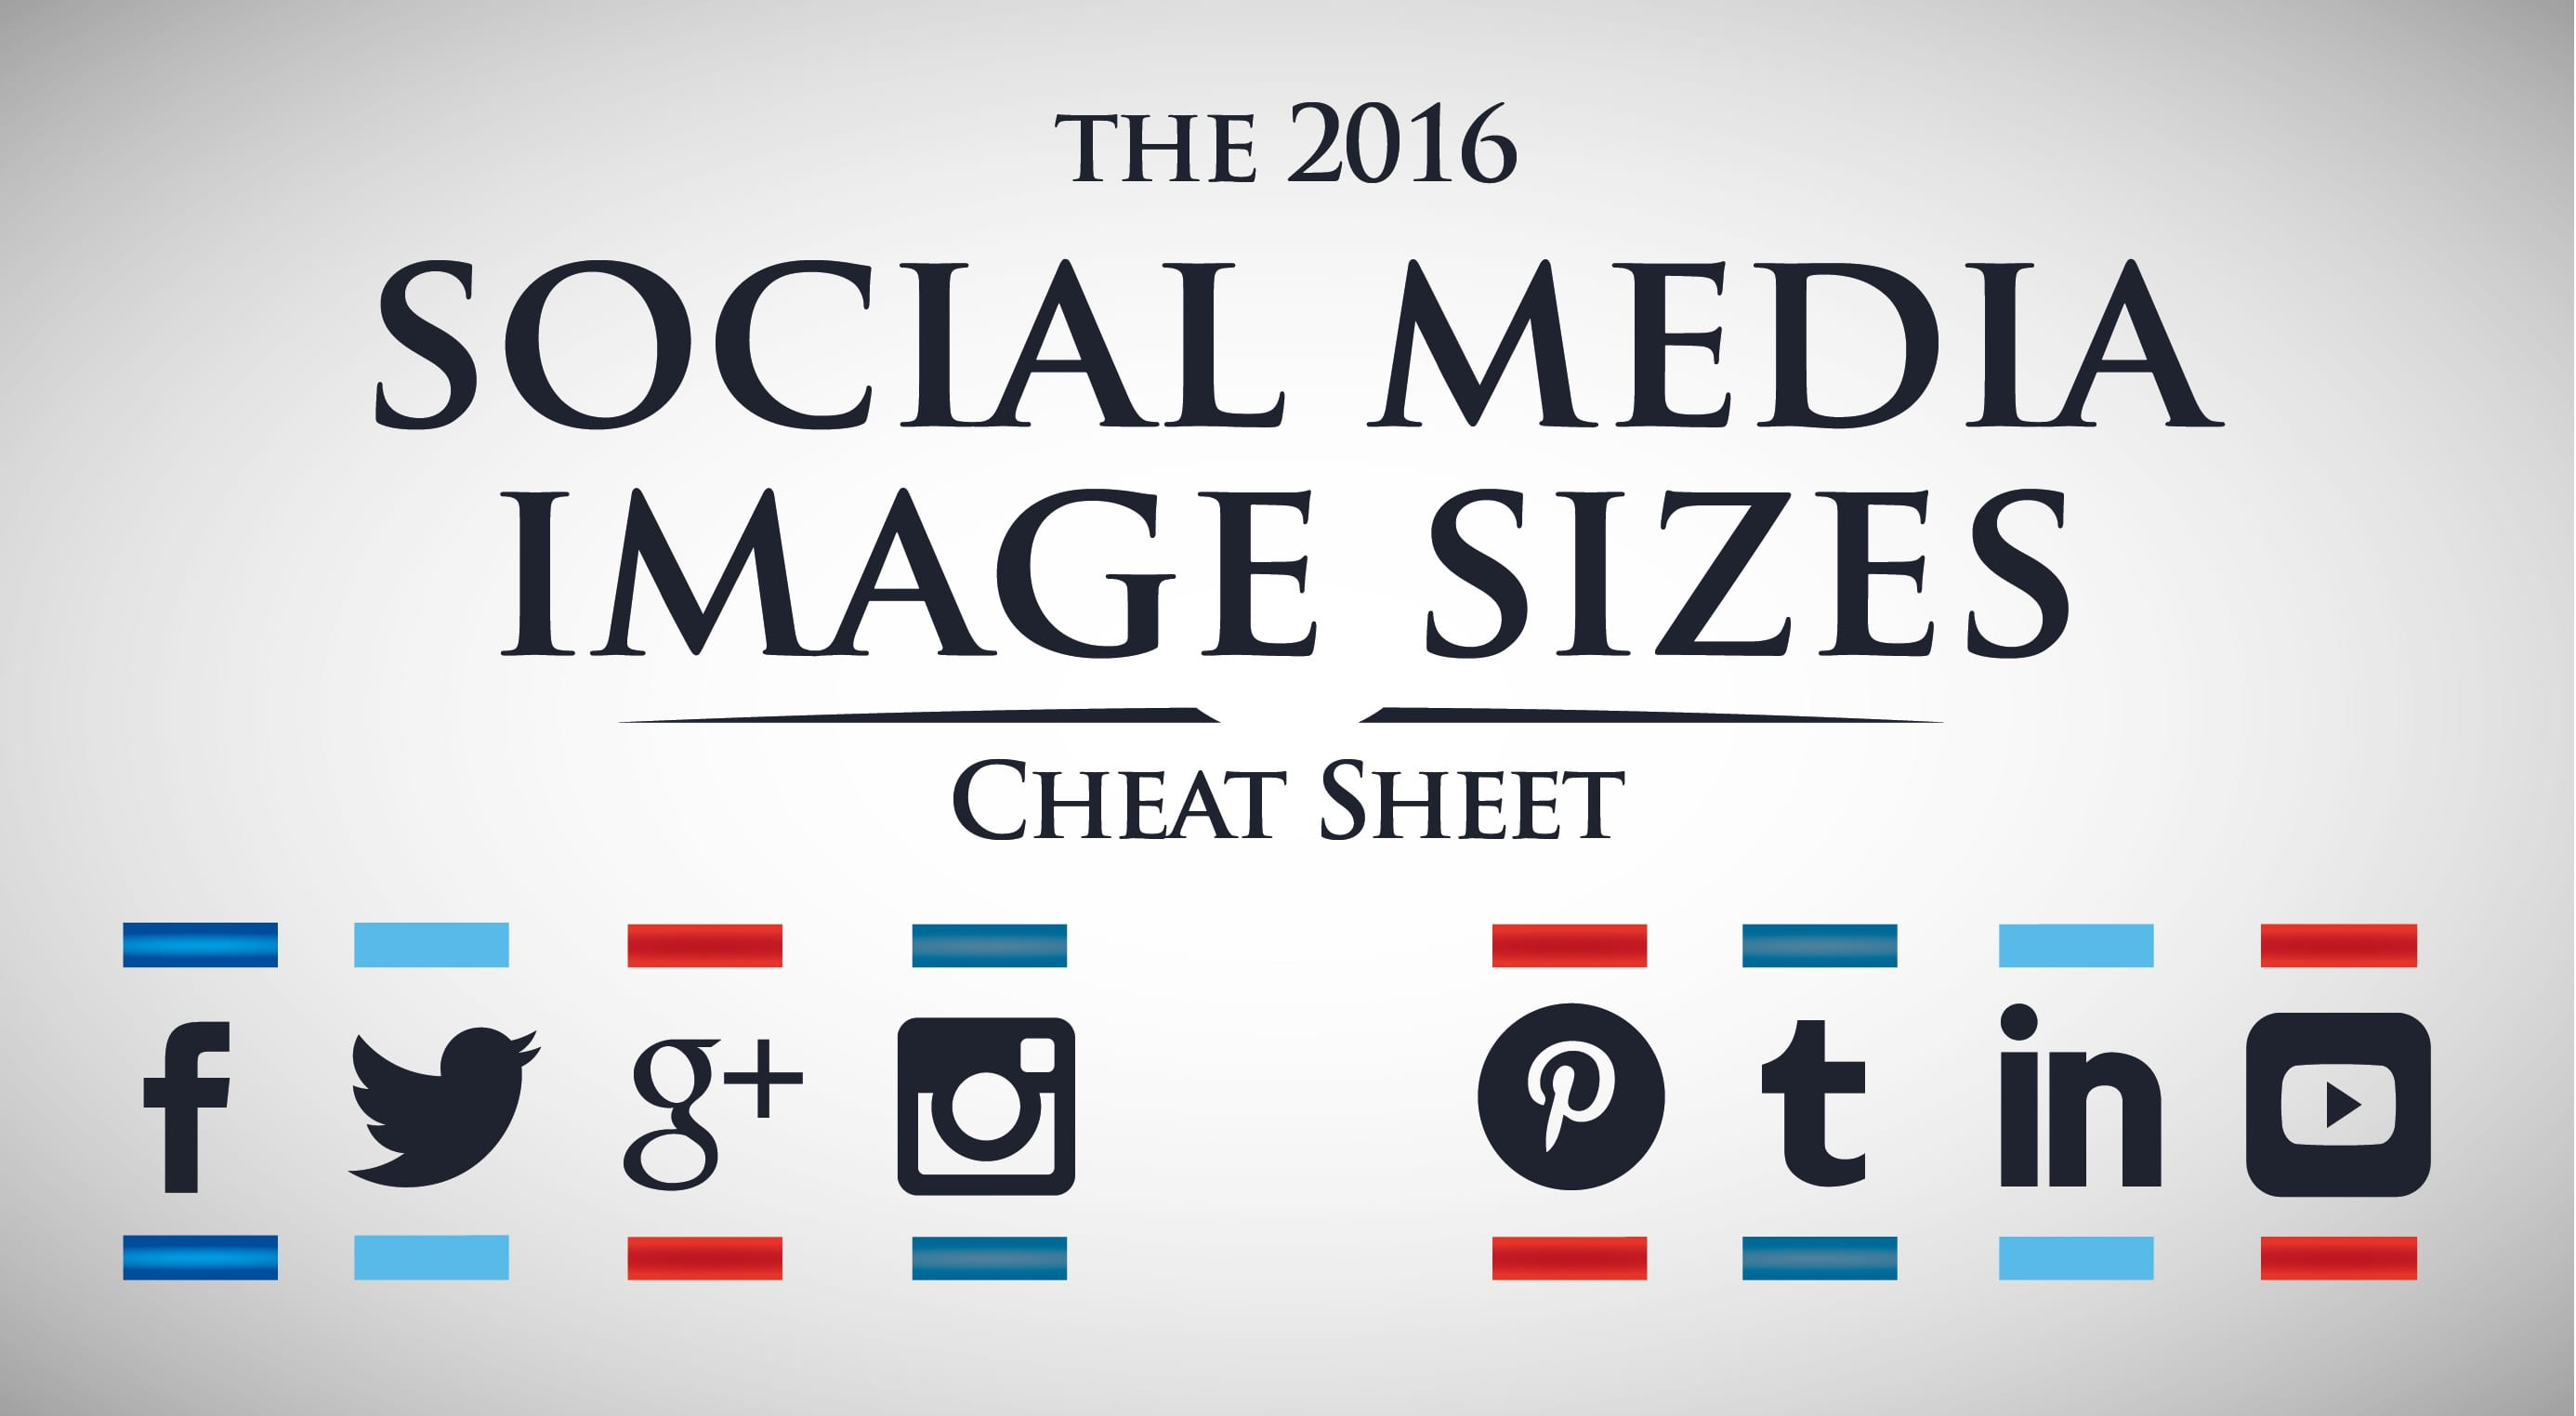 social-media-image-sizes-2016-header-1.jpg